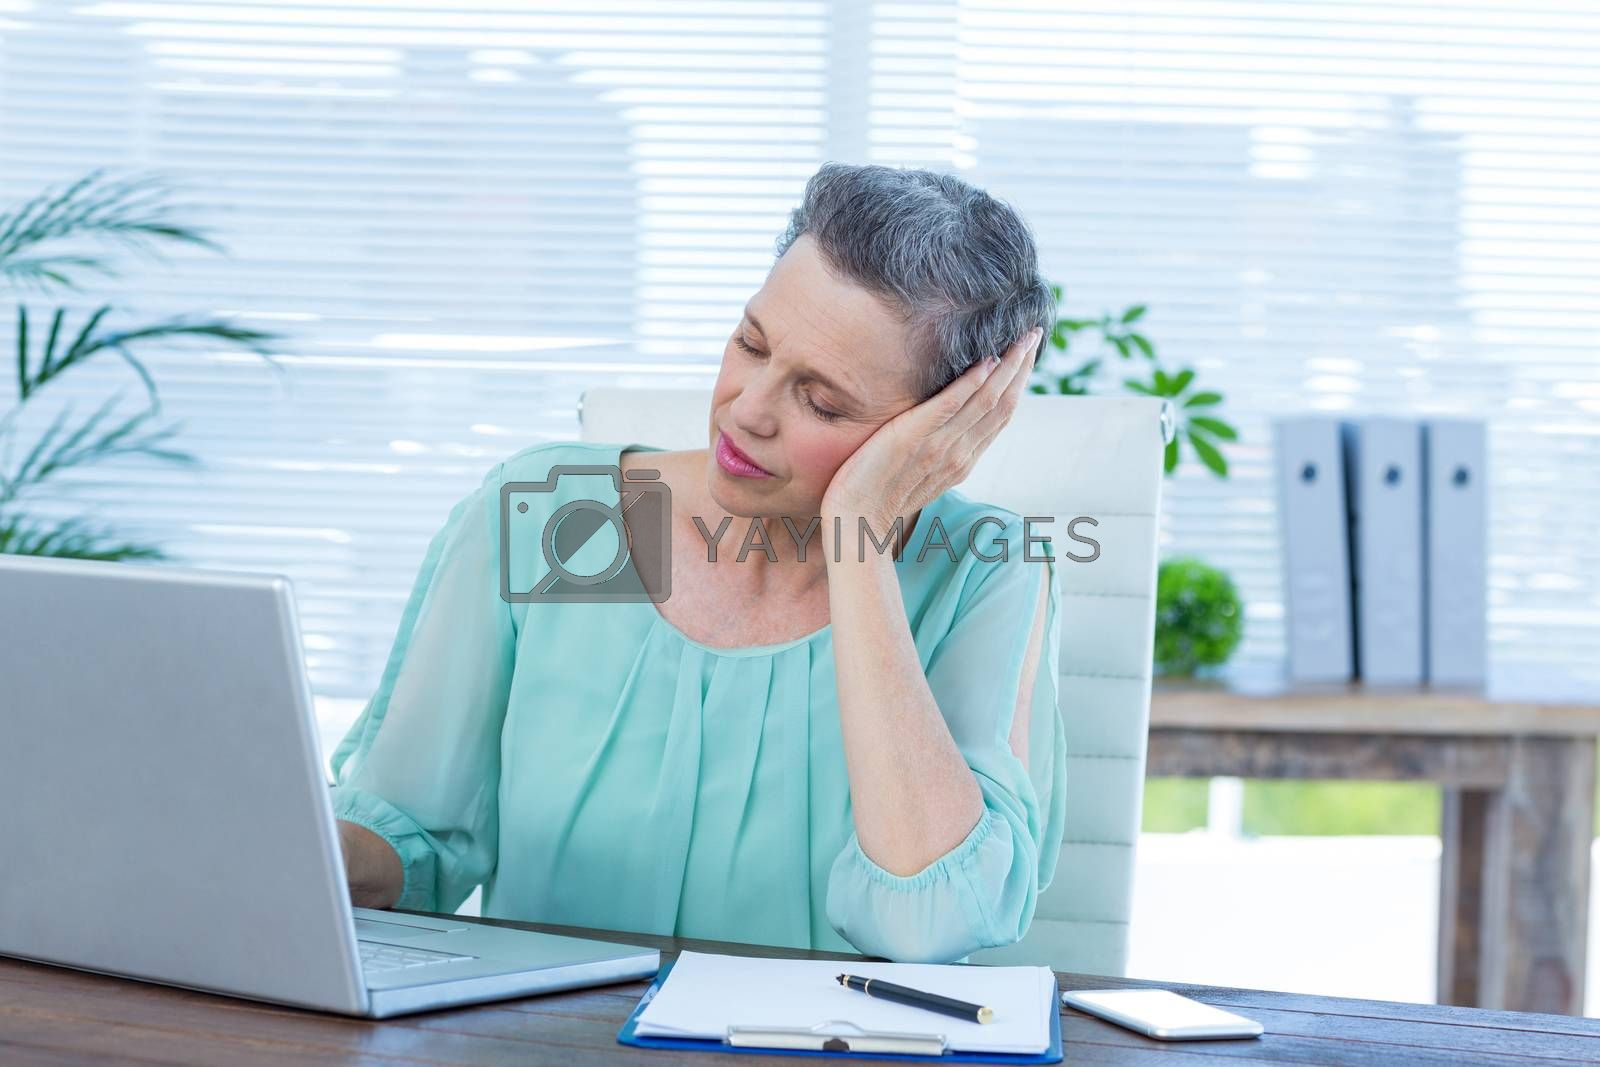 Royalty free image of Tired businesswoman working on laptop by Wavebreakmedia